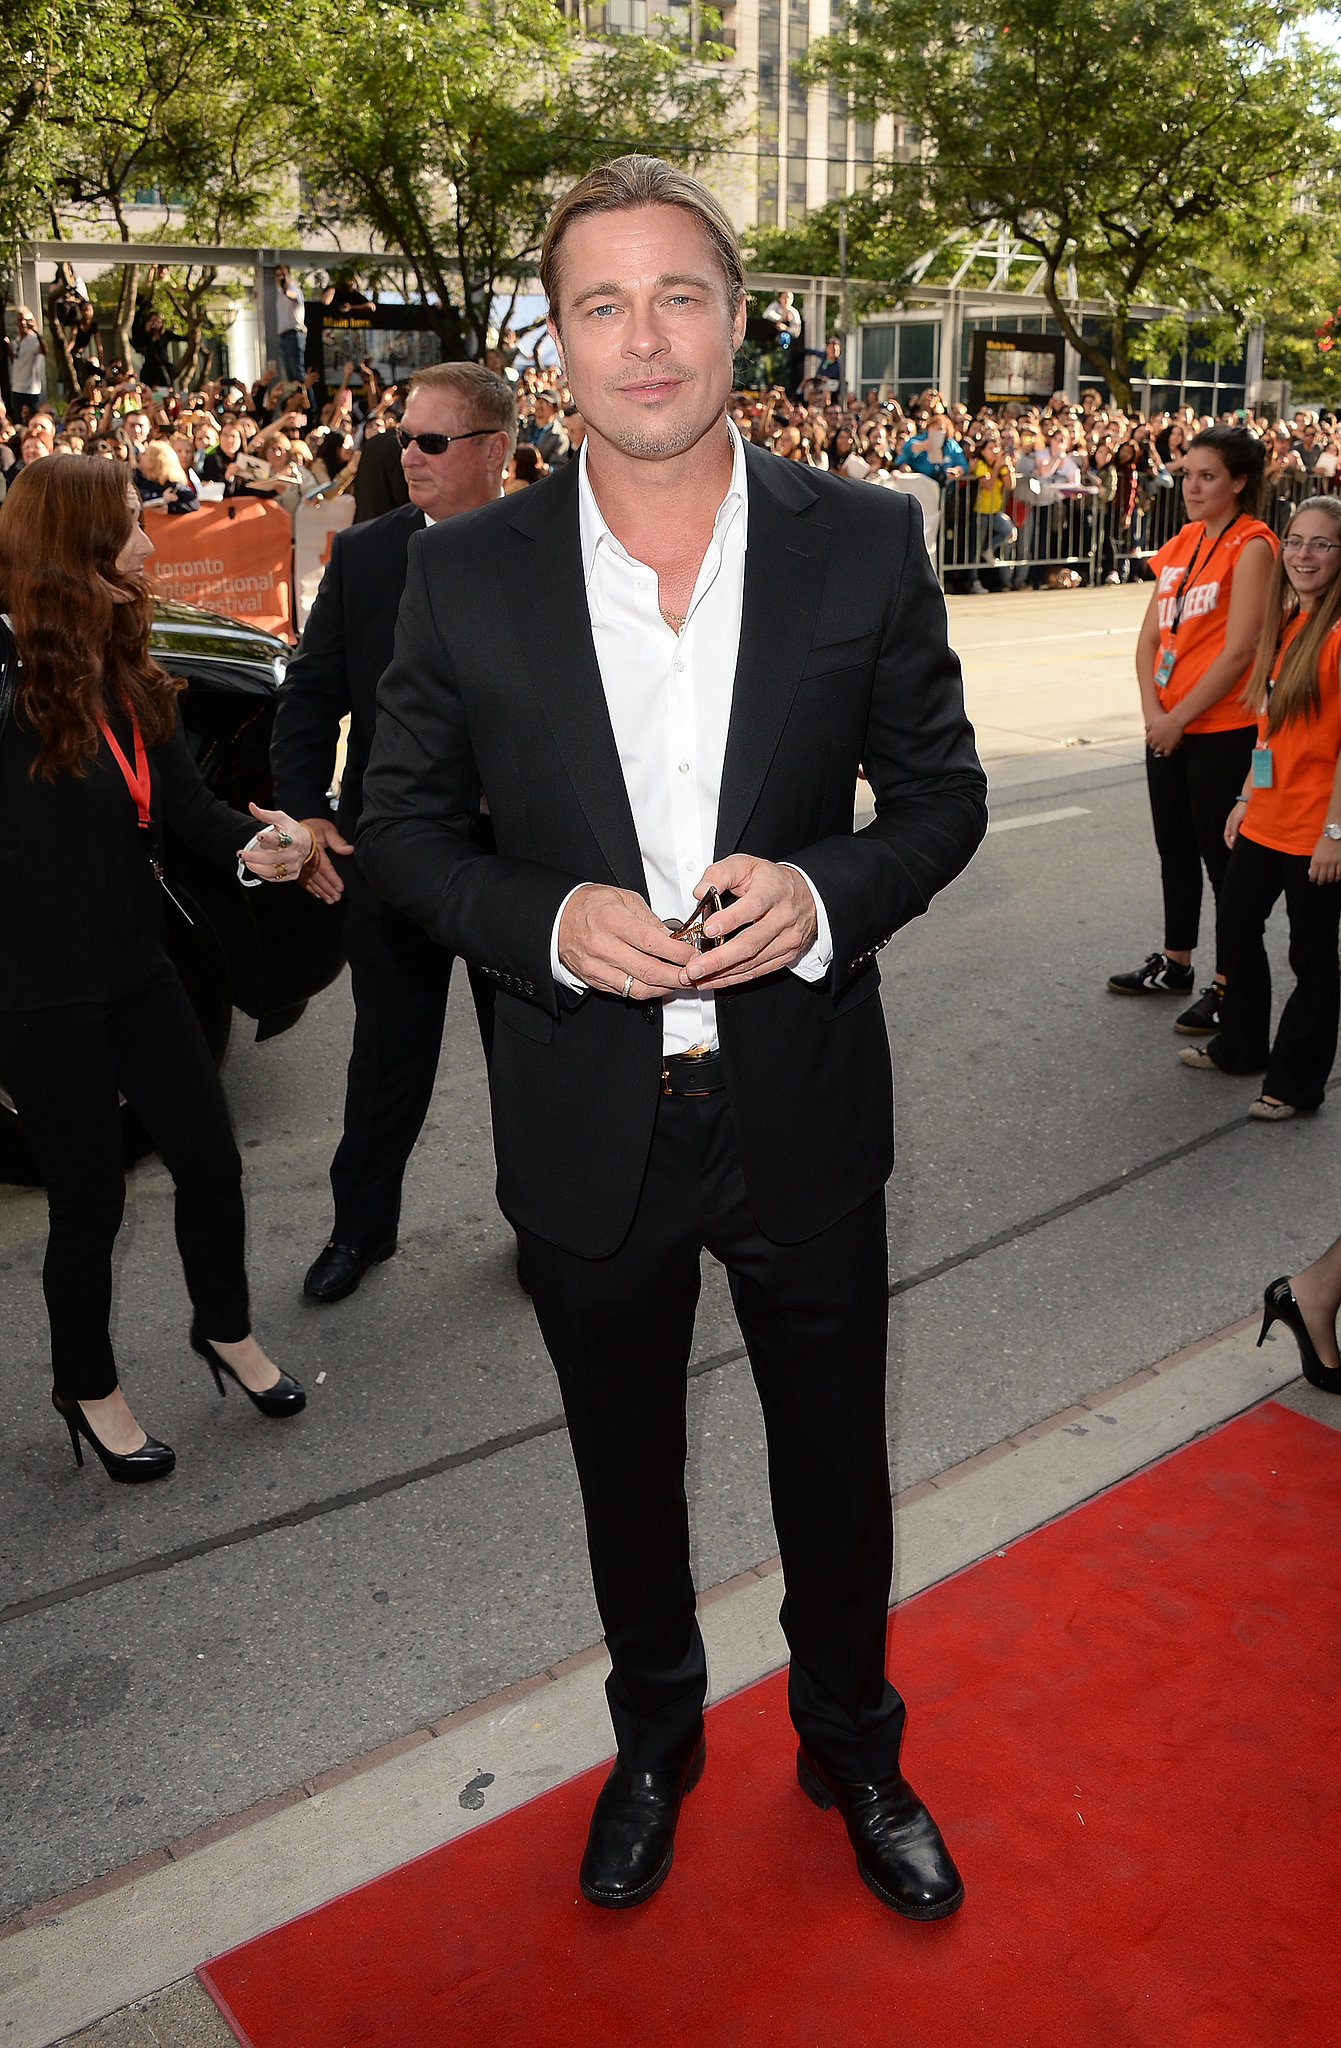 Brad Pitt hit the red carpet for the premiere of 12 Years a Slave.